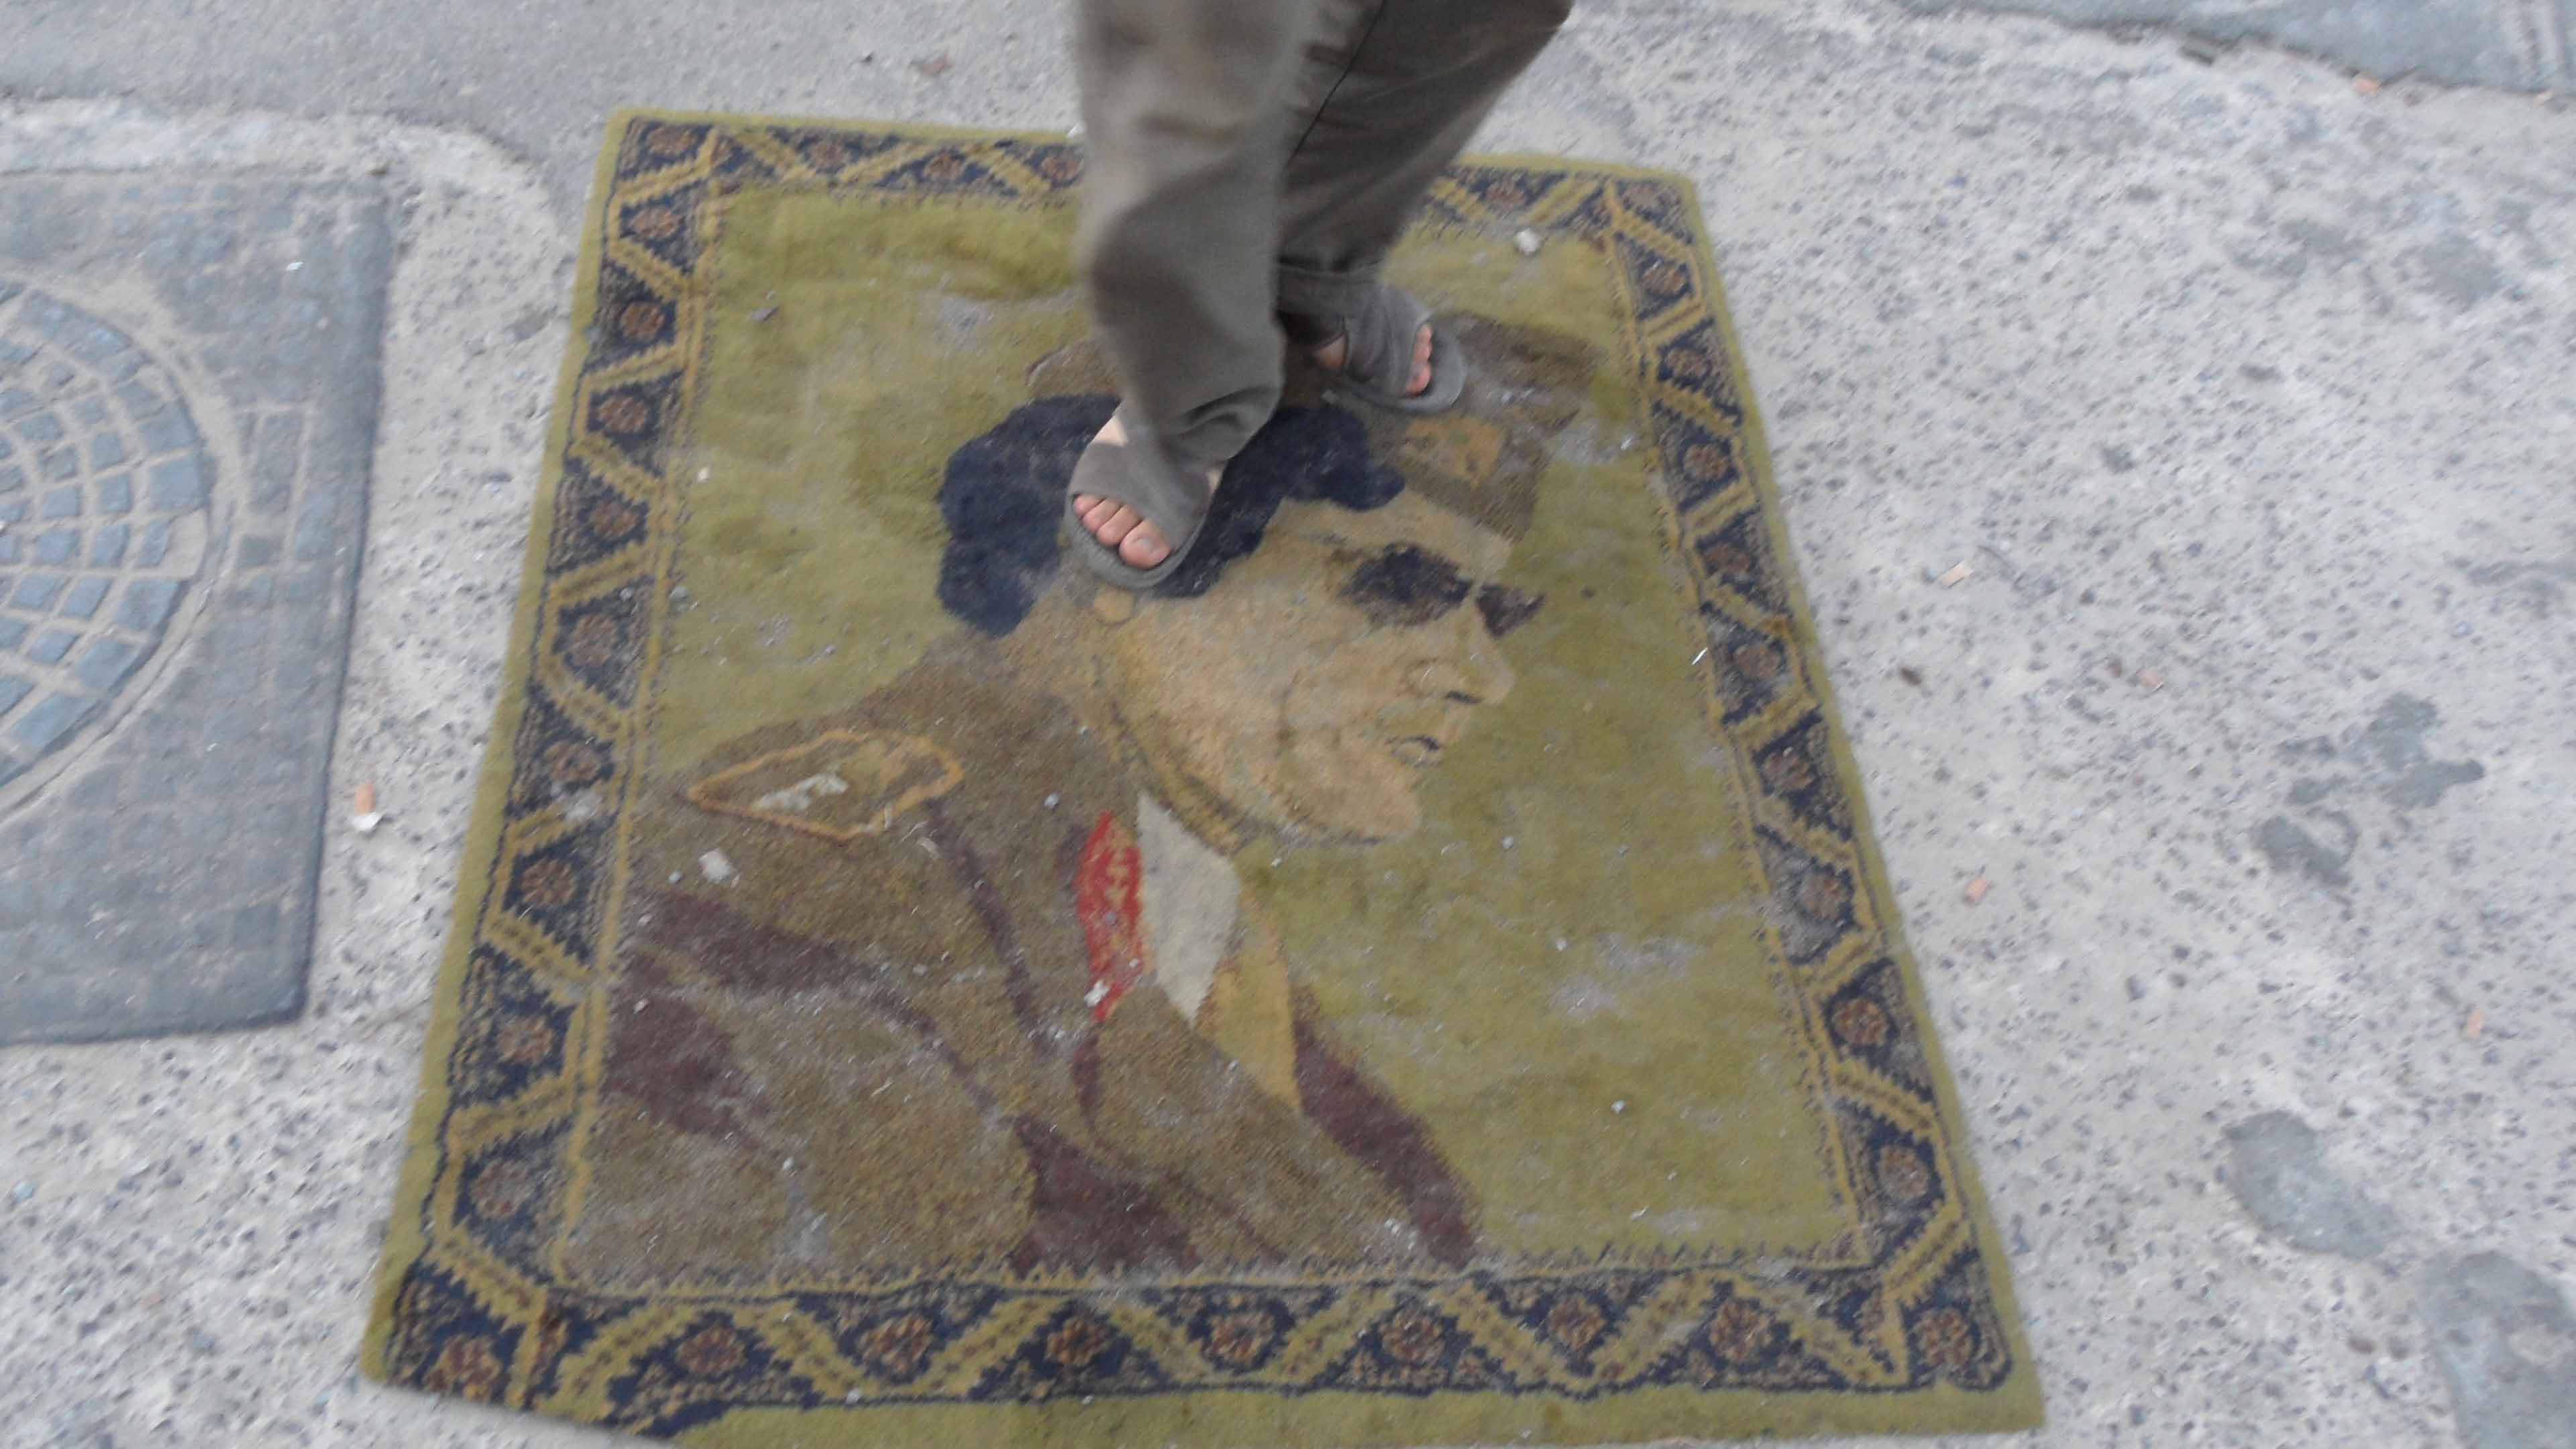 Stepping on Gadhafi's face